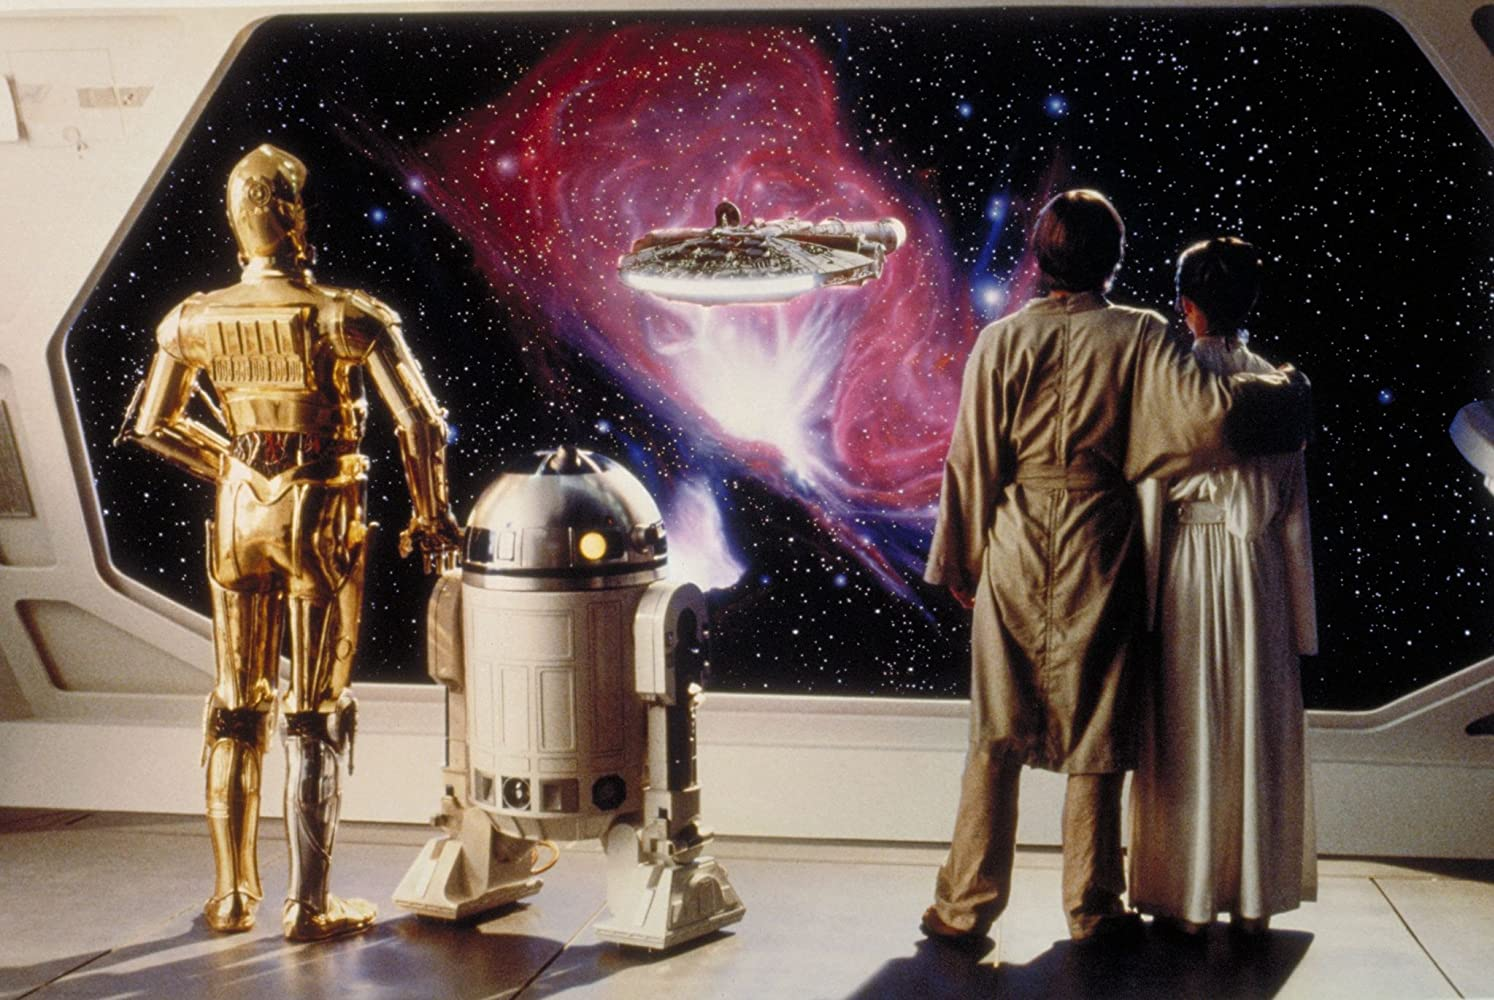 Anthony Daniels, Carrie Fisher, Mark Hamill, and Kenny Baker in Star Wars: Episode V - The Empire Strikes Back (1980)